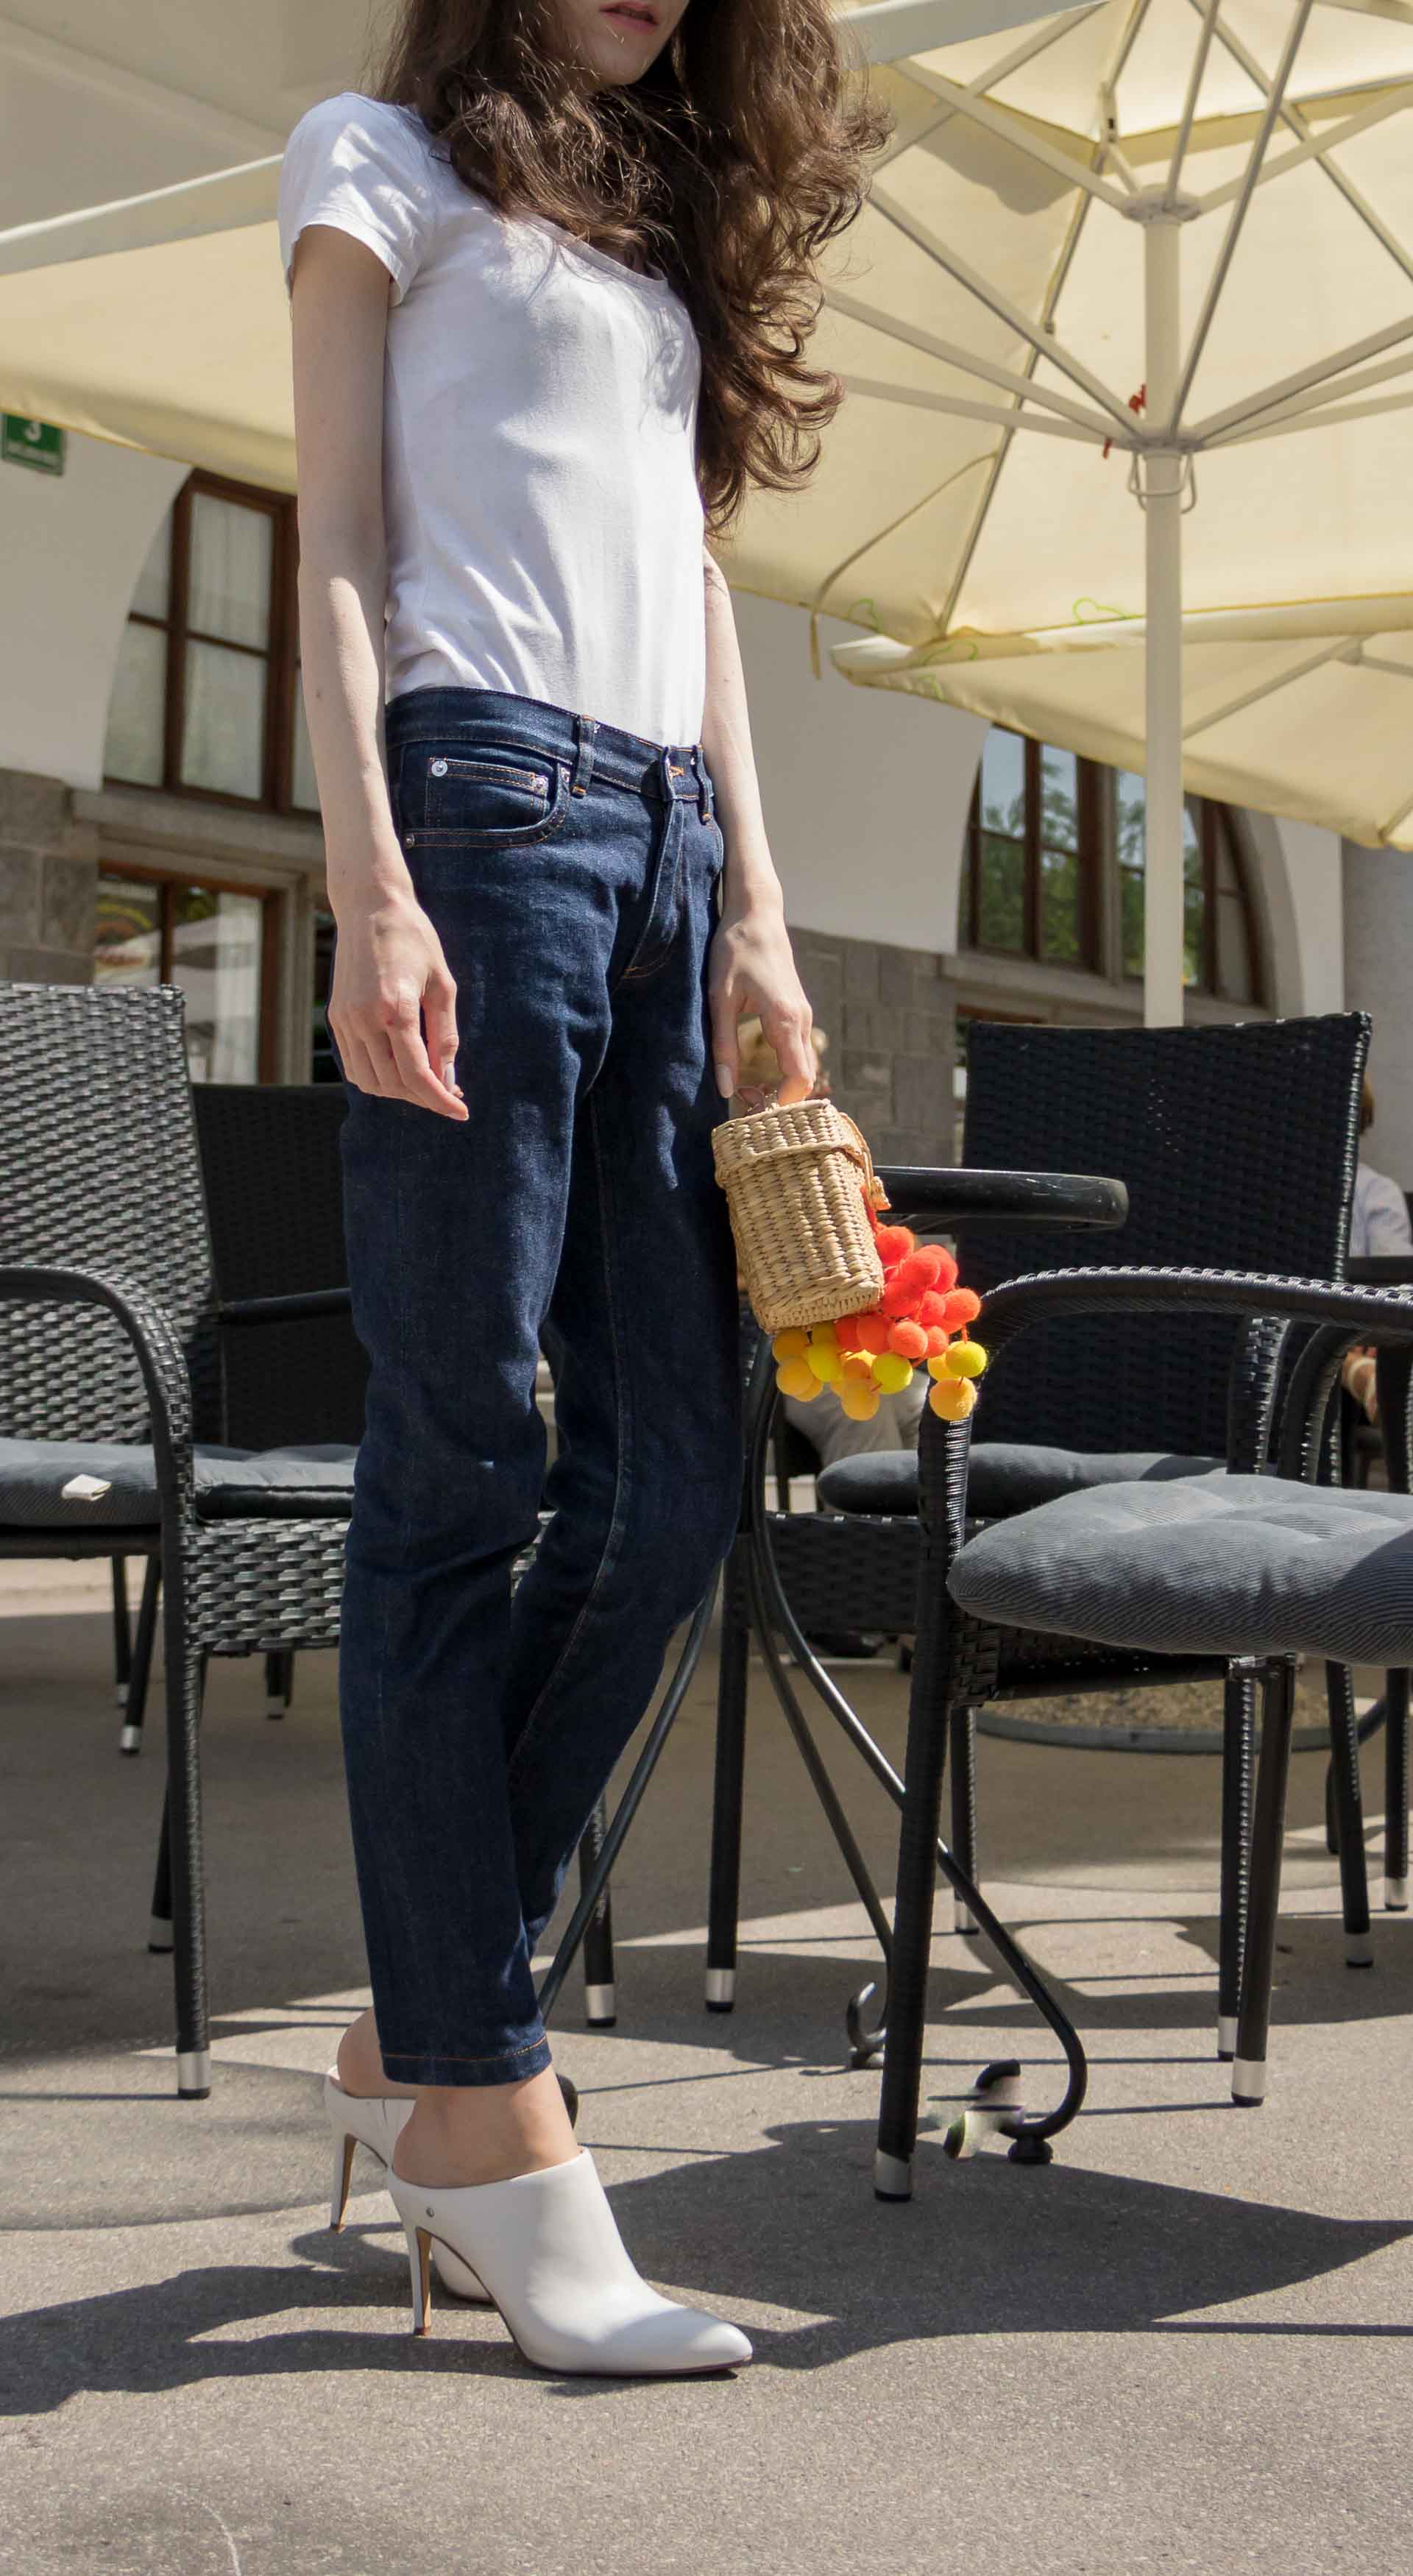 Veronika Lipar Fashion Editor of Brunette from Wall Street dressed in dark blue tapered jeans from A.P.C., H&M white T-shirt, Nannacay basket bag, white mules and Adam Selman x Le Specs white cat eye Lolita sunglasses on the street for drinks